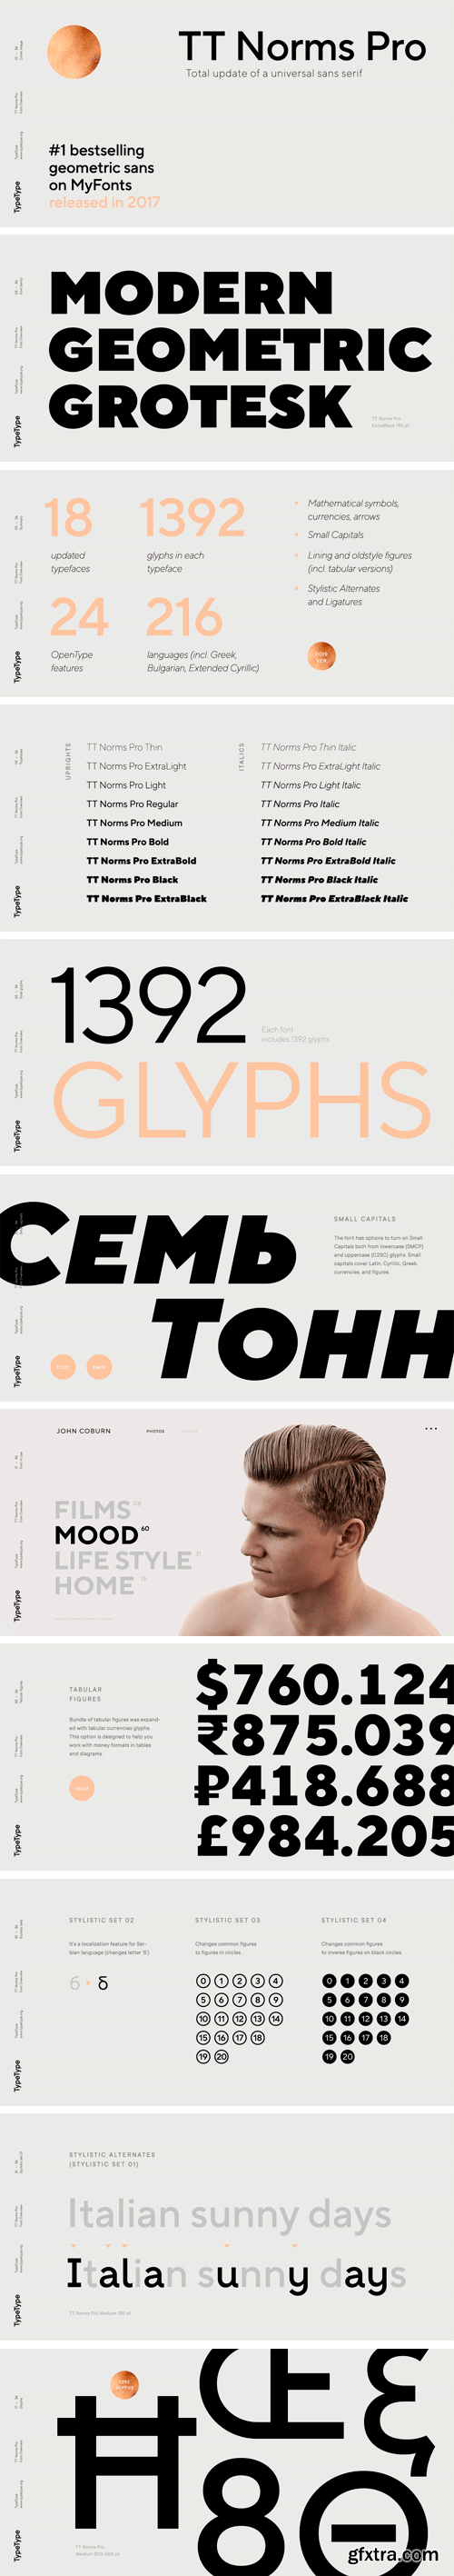 TT Norms Pro Font Family (Updated, v2.000, 2019)